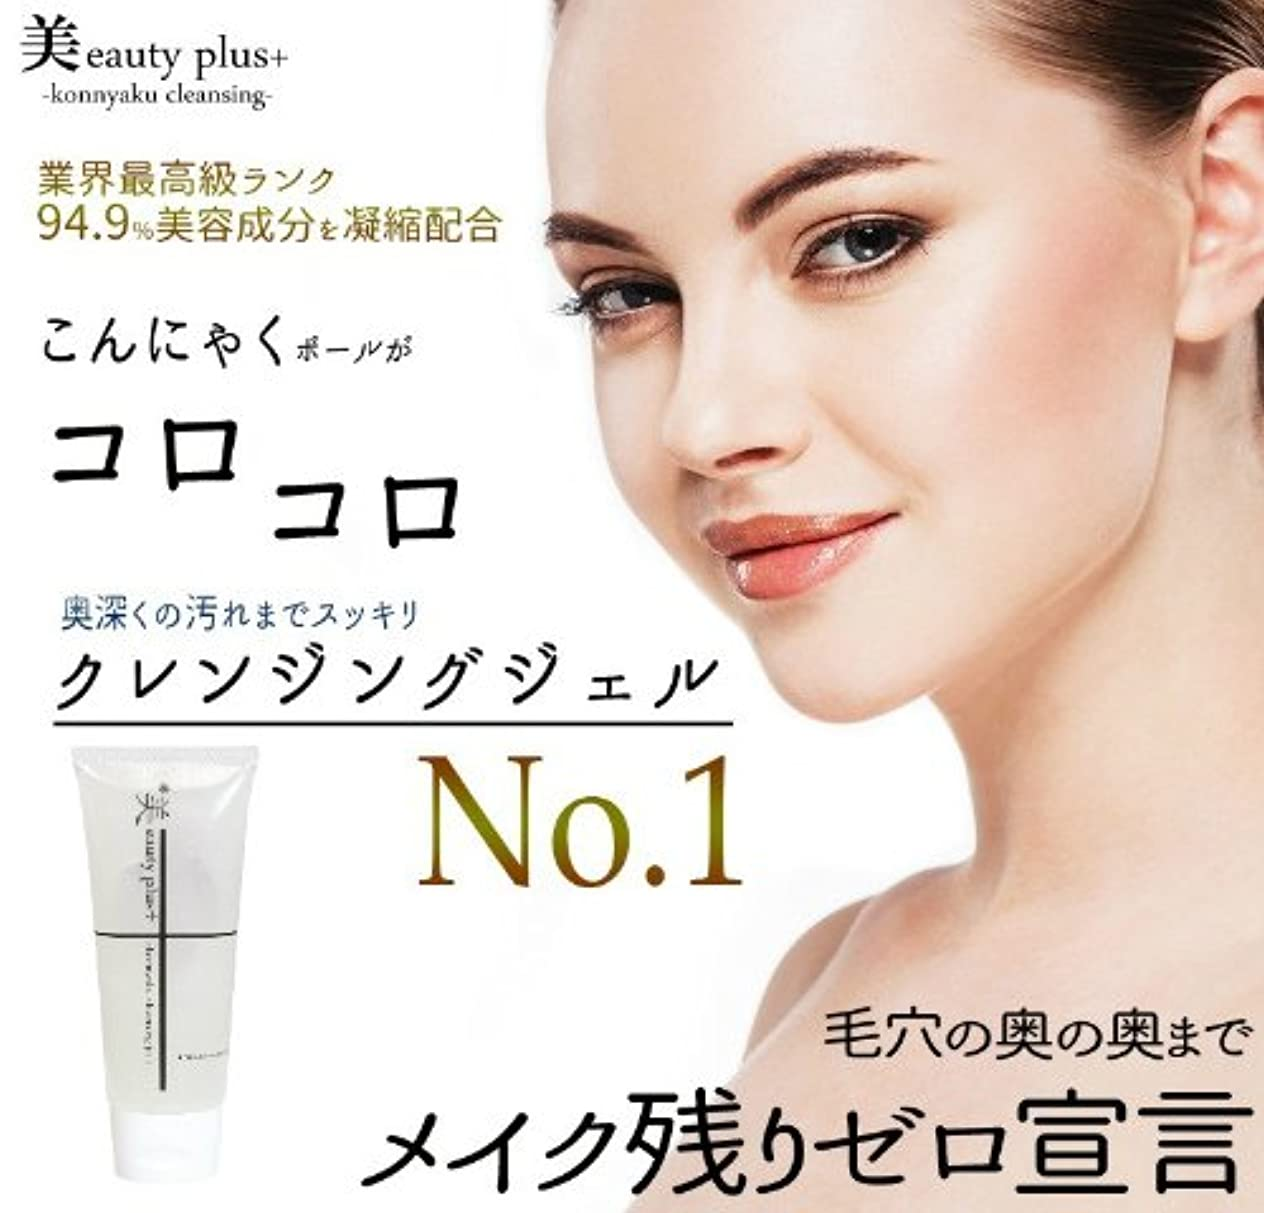 美eauty Plus+ Konnyaku Cleansing Jel